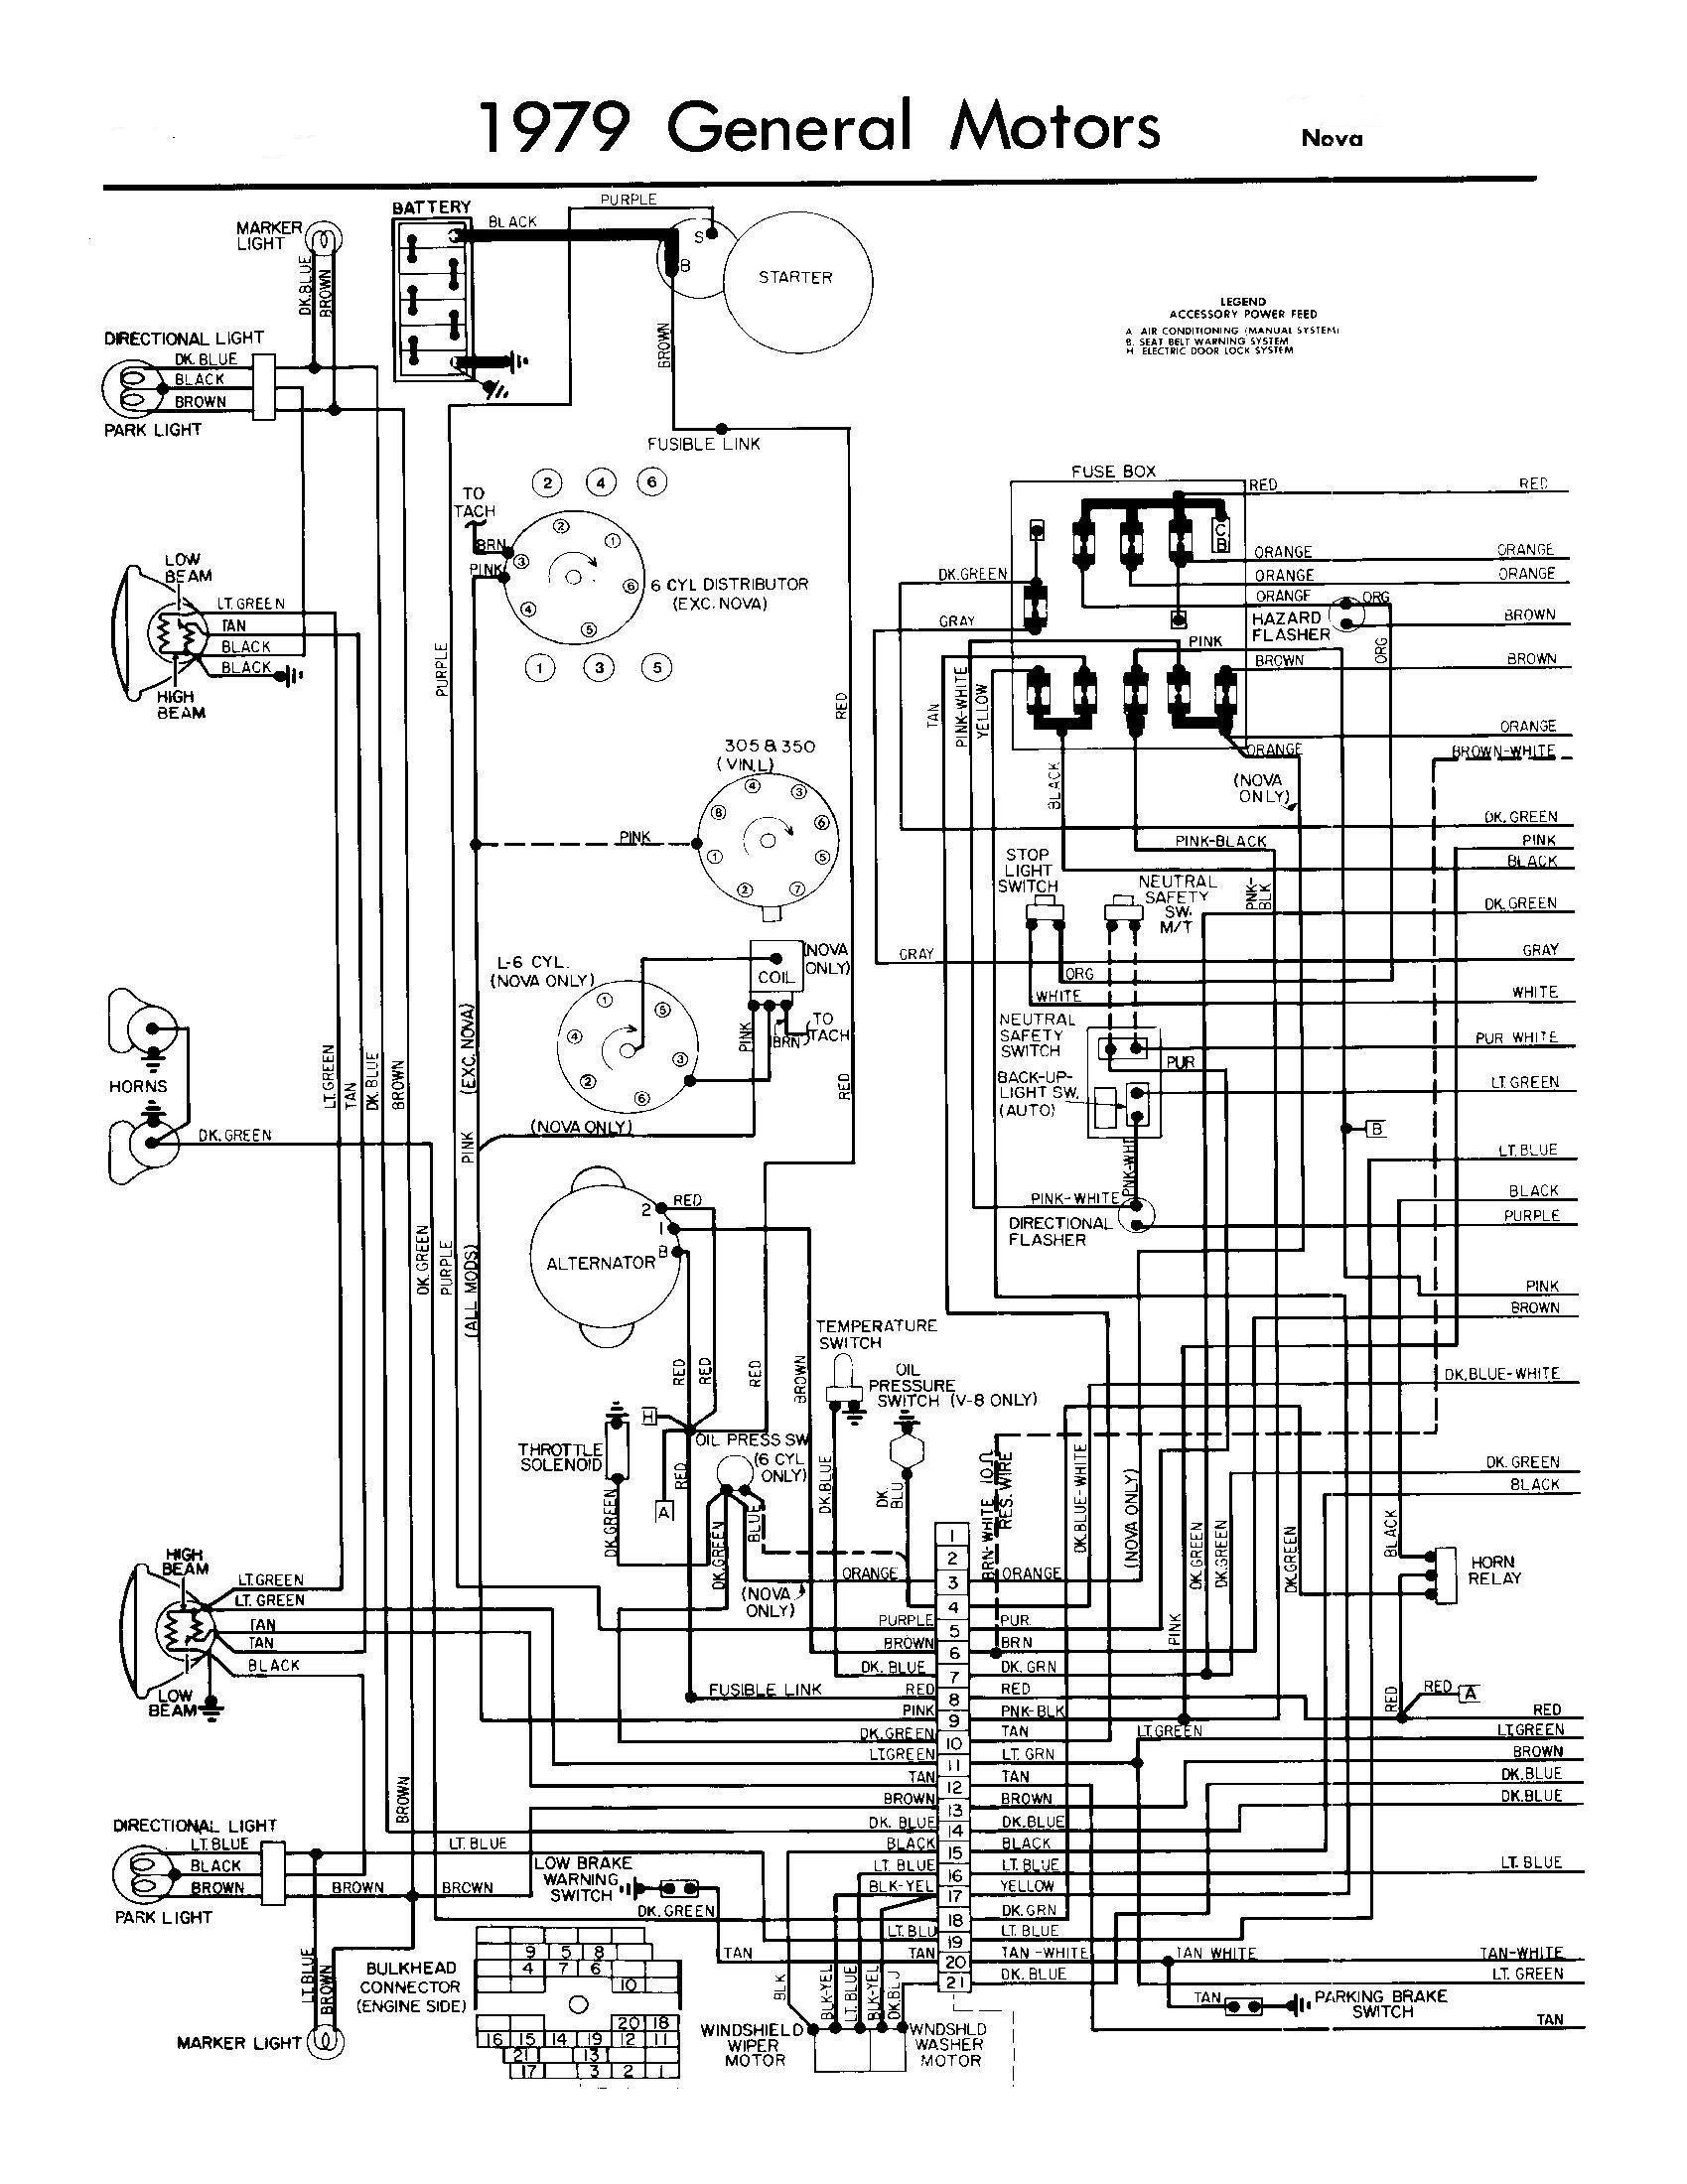 1972 Chevy 350 Ignition Wiring | Wiring Diagram - Ignition Wiring Diagram Chevy 350